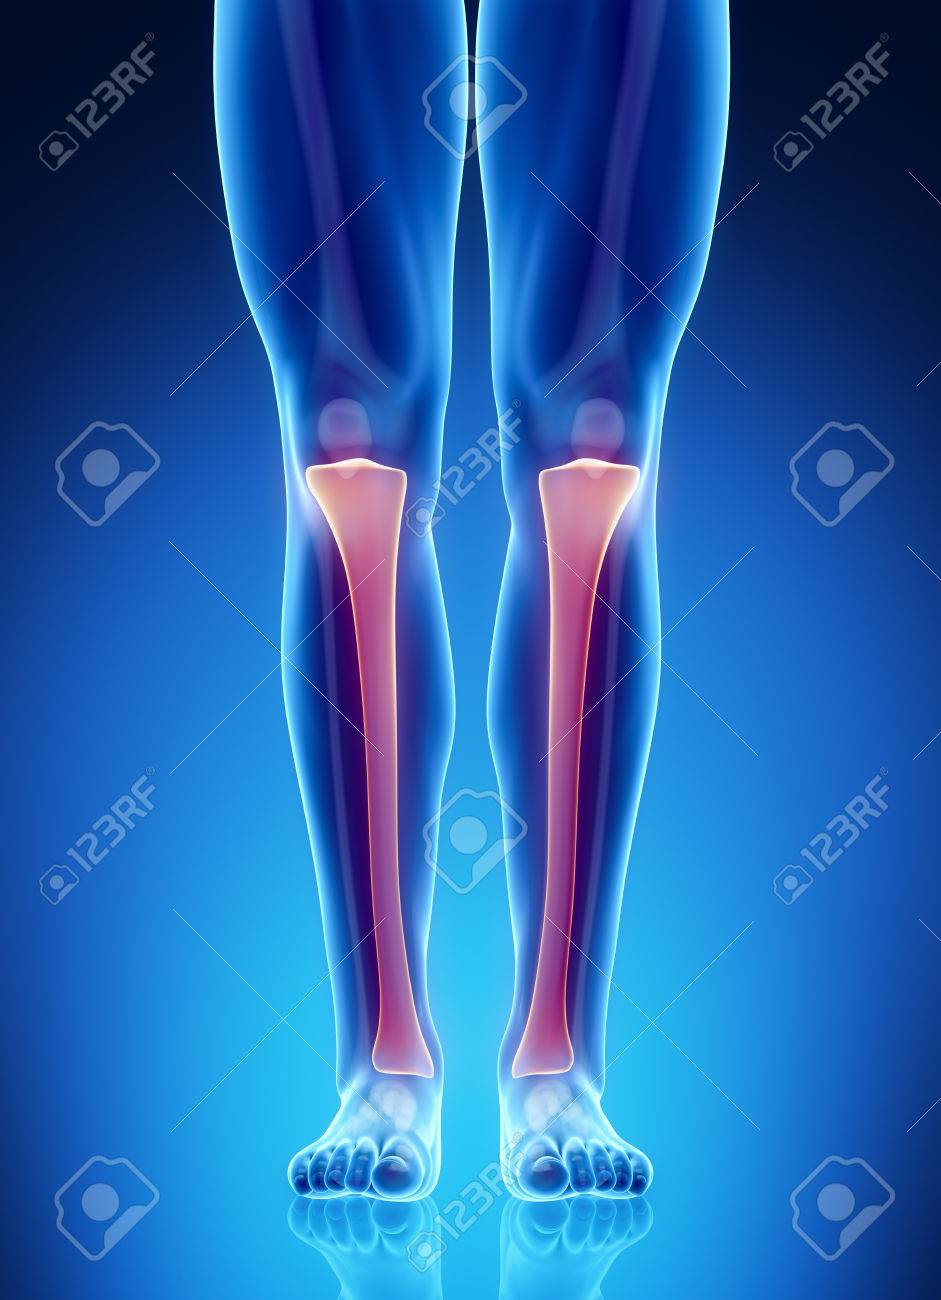 Male Bone Anatomy Tibia Stock Photo, Picture And Royalty Free Image ...